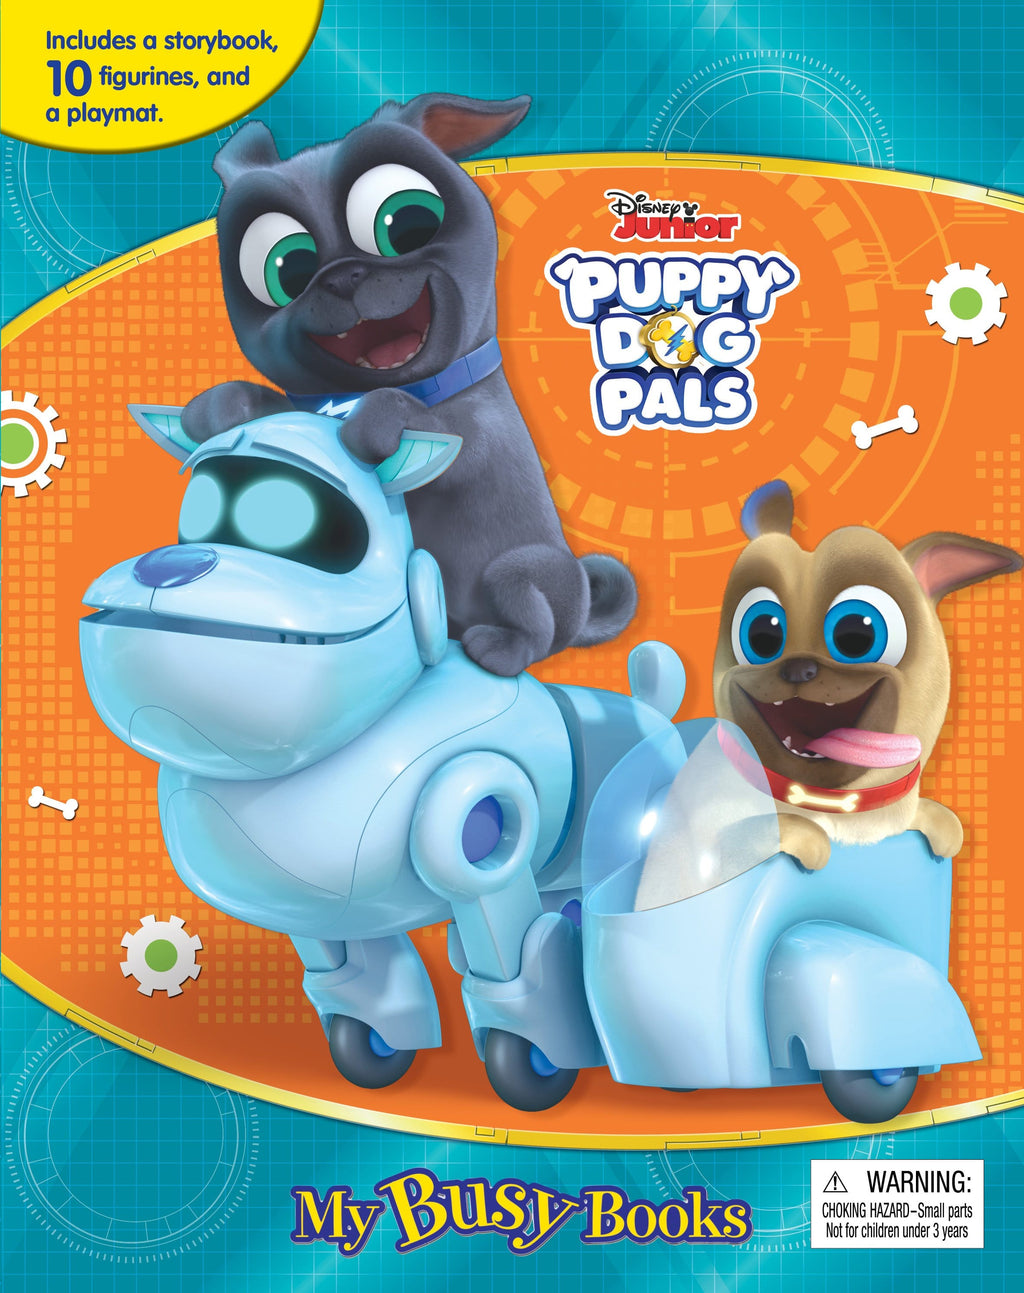 Puppy Dog Pals - My Busy Books